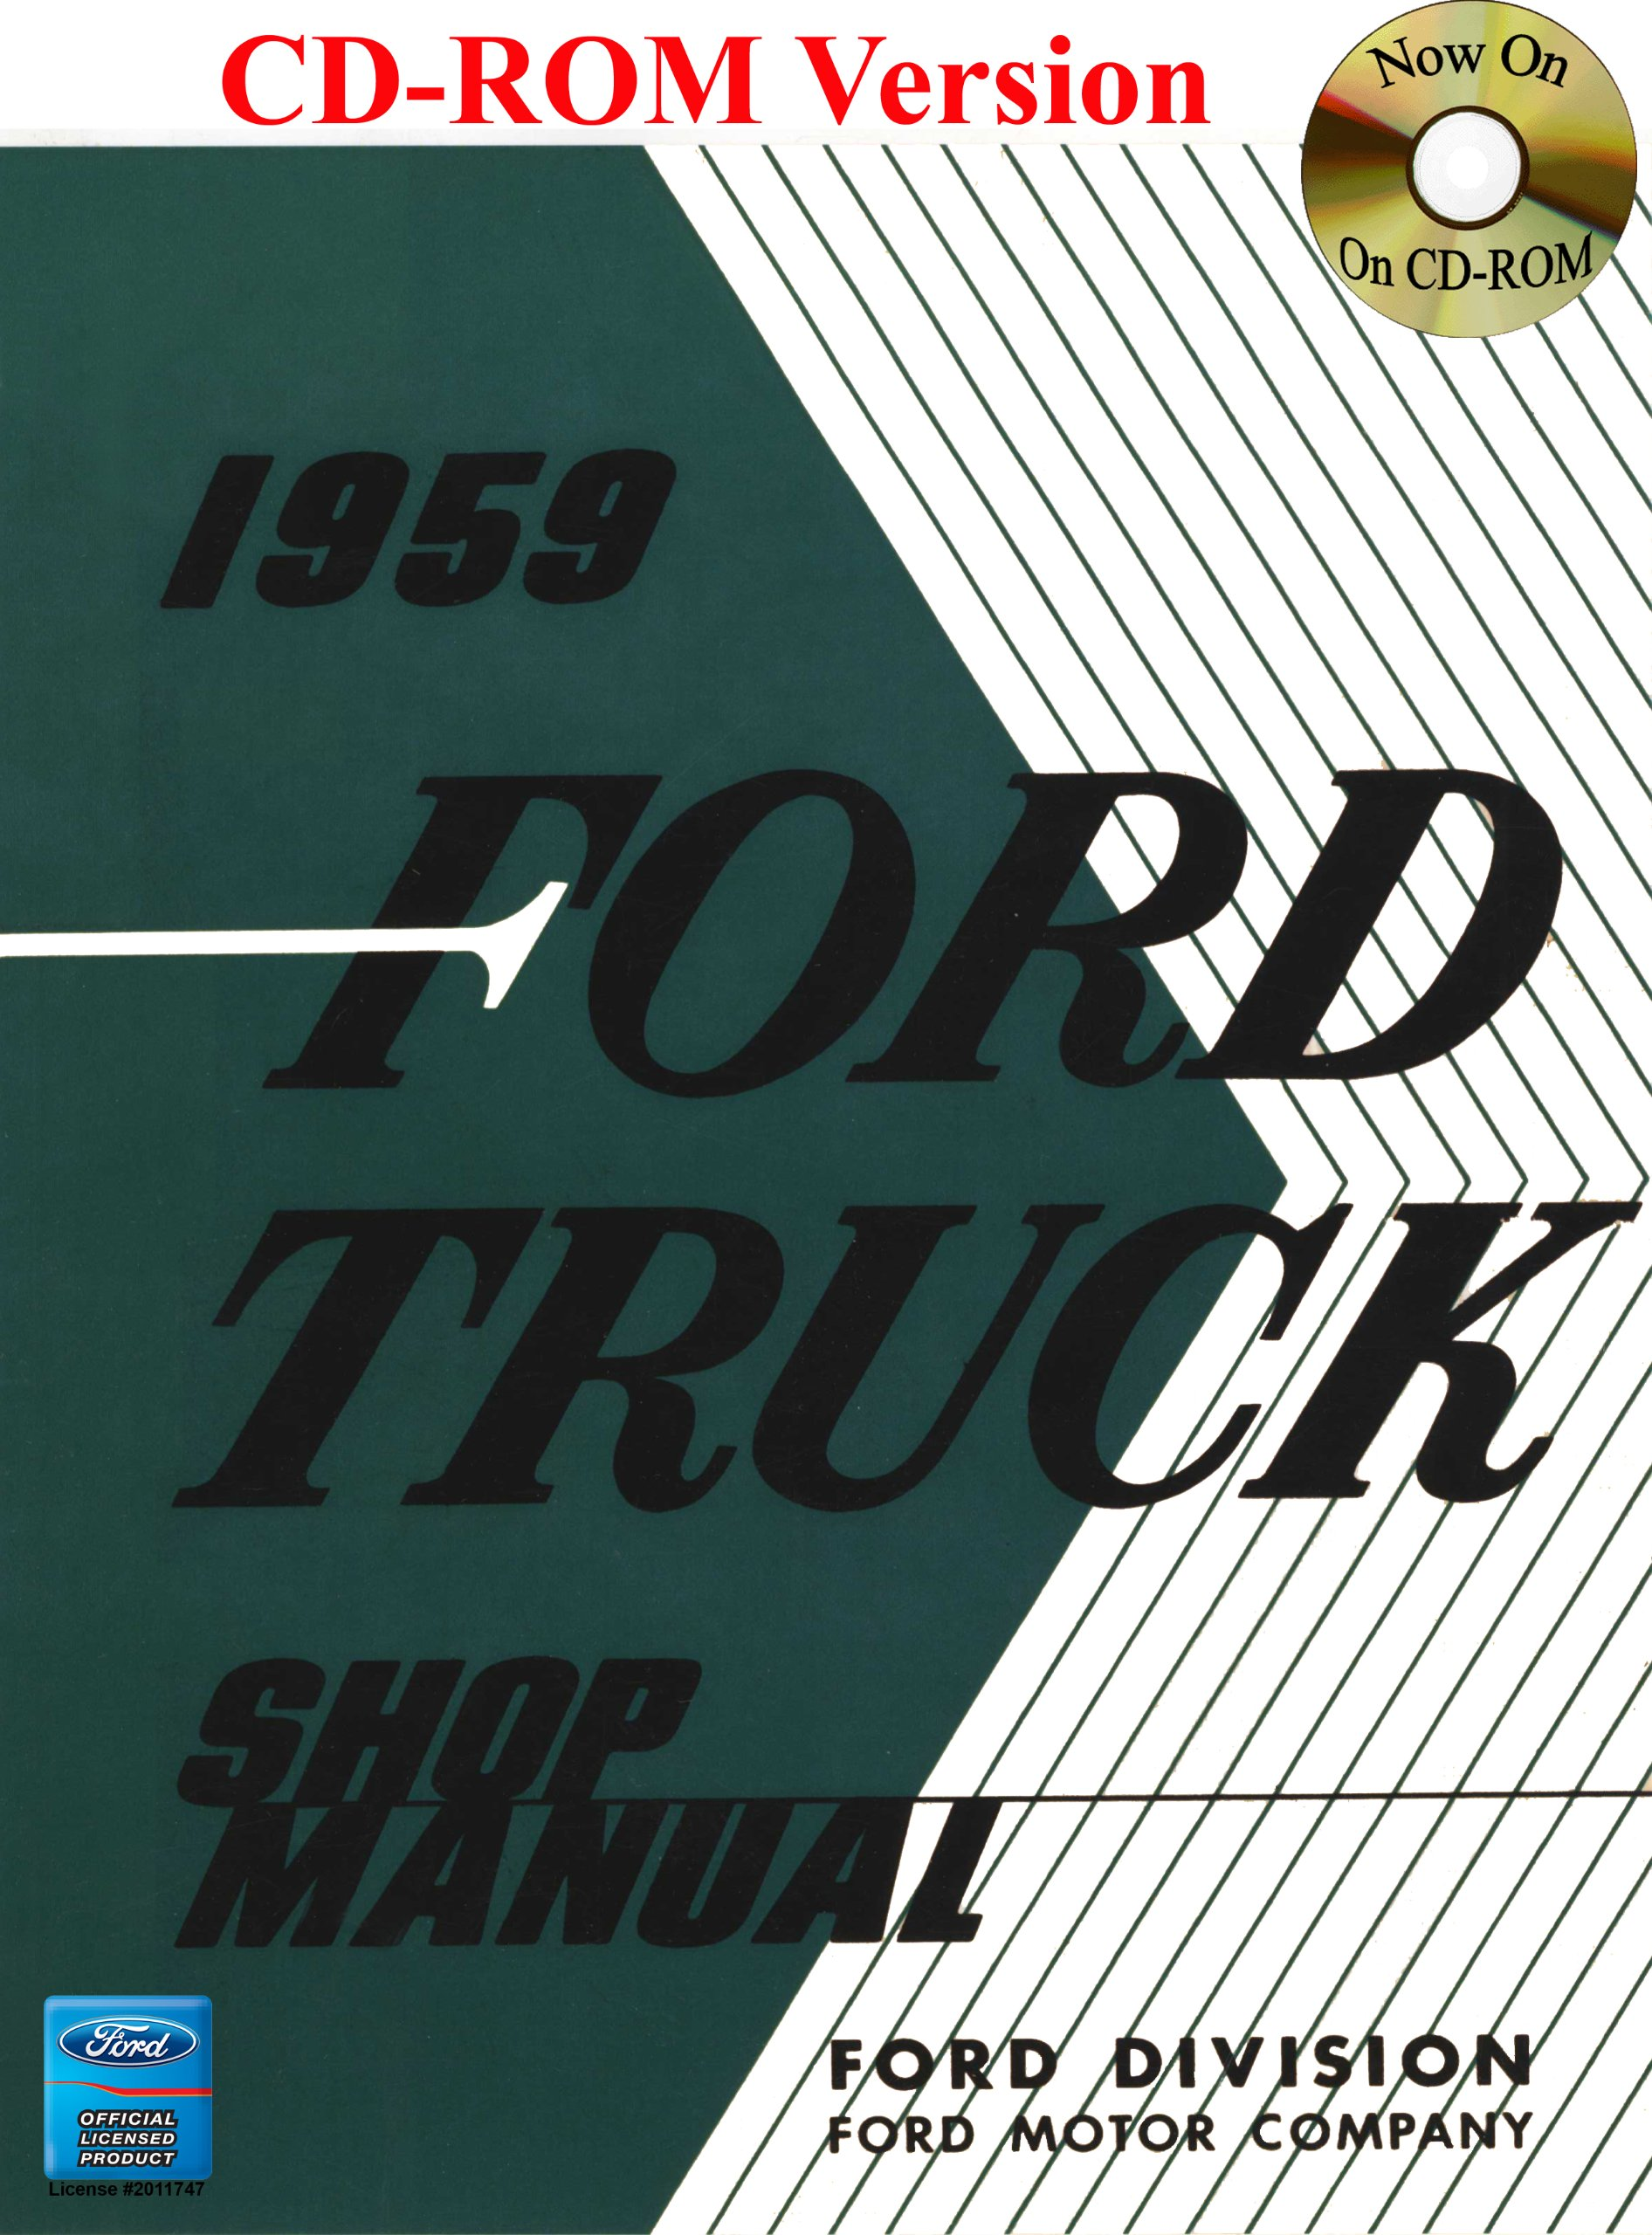 1959 ford f100 wiring diagram 1959 image wiring 1959 ford truck shop manual ford motor company david e leblanc on 1959 ford f100 wiring